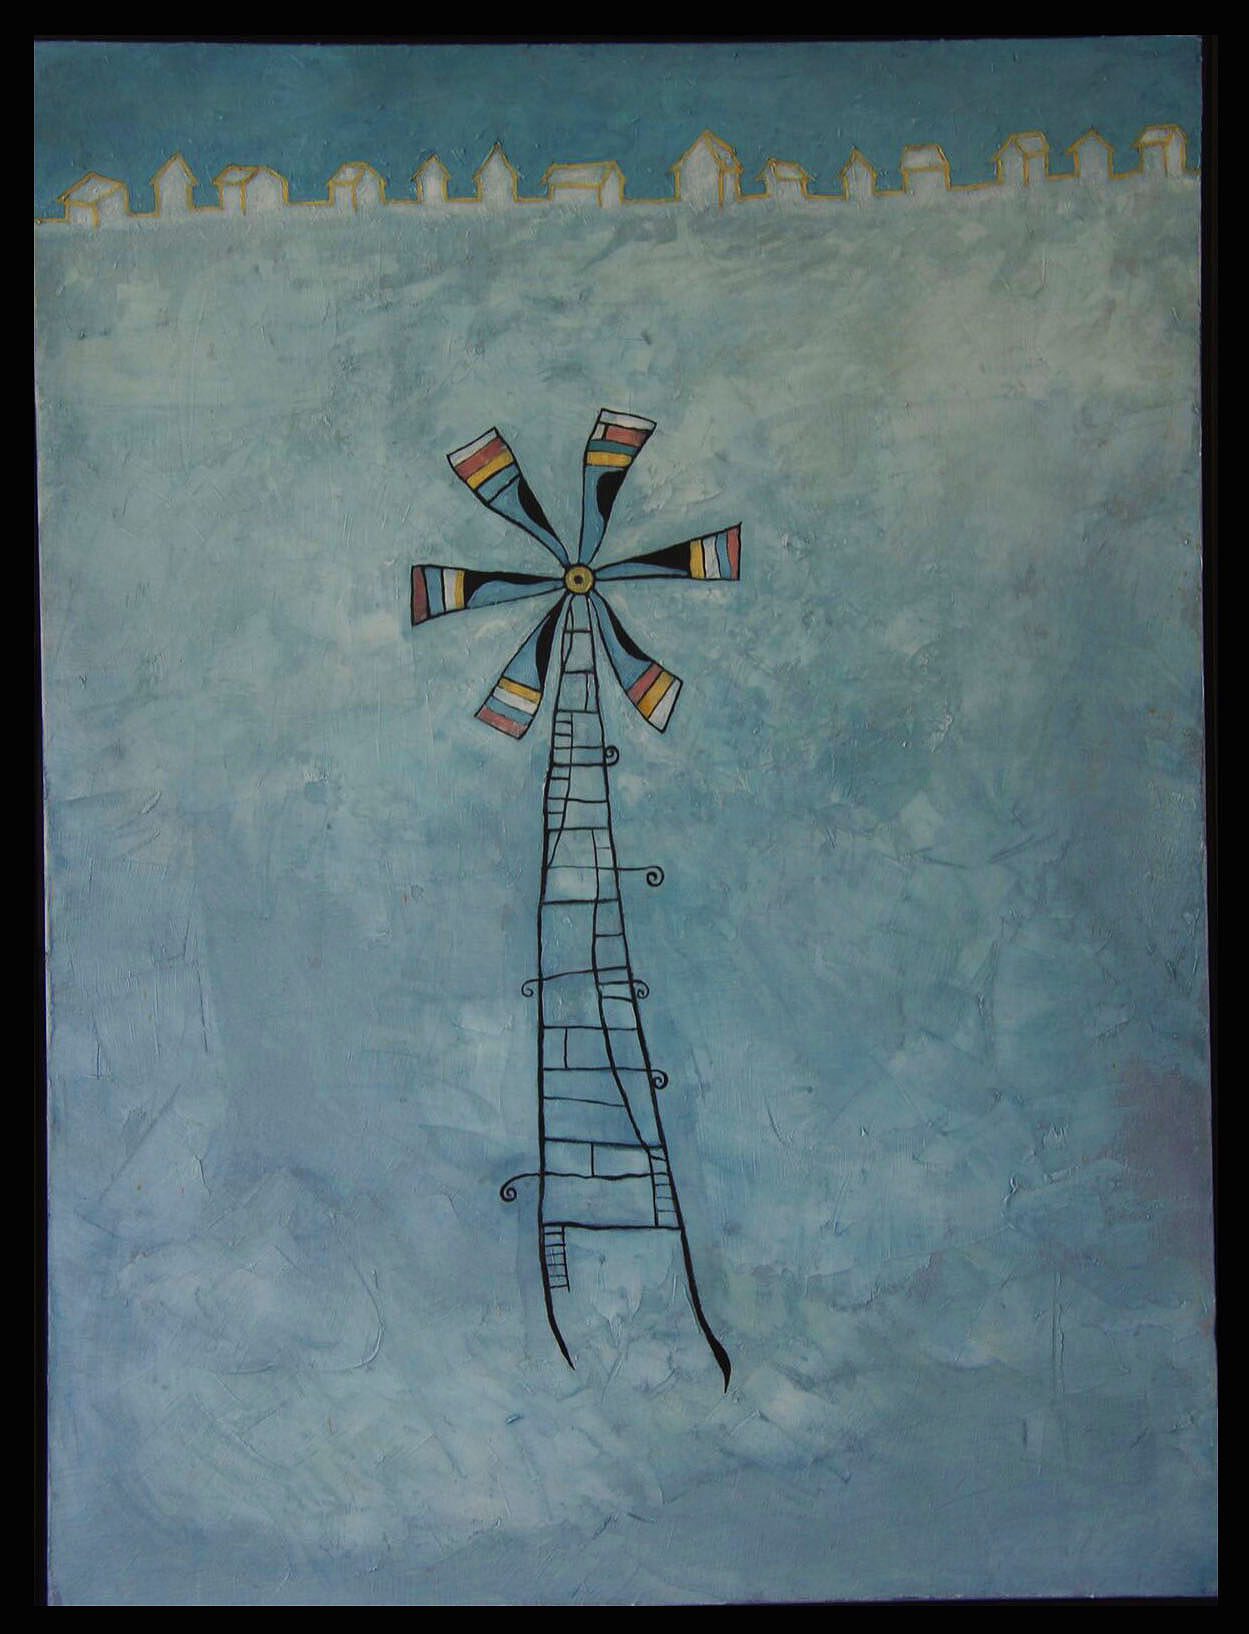 Windmill 1, Oil on Canvas, 40x30 in, Robert Hite, 2015